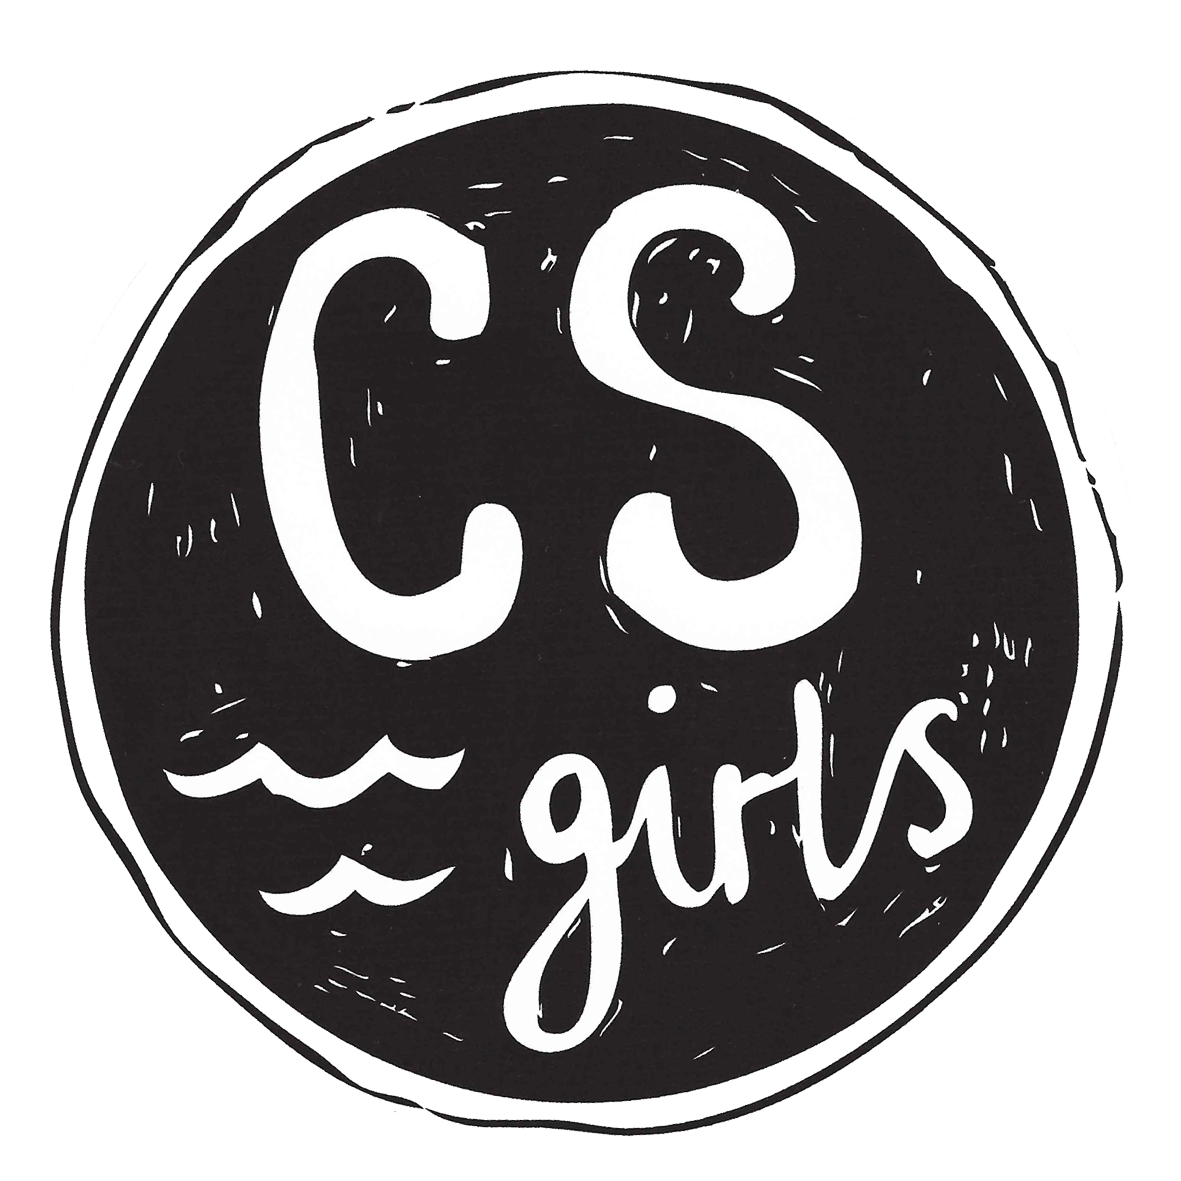 Csa girls round sticker black white